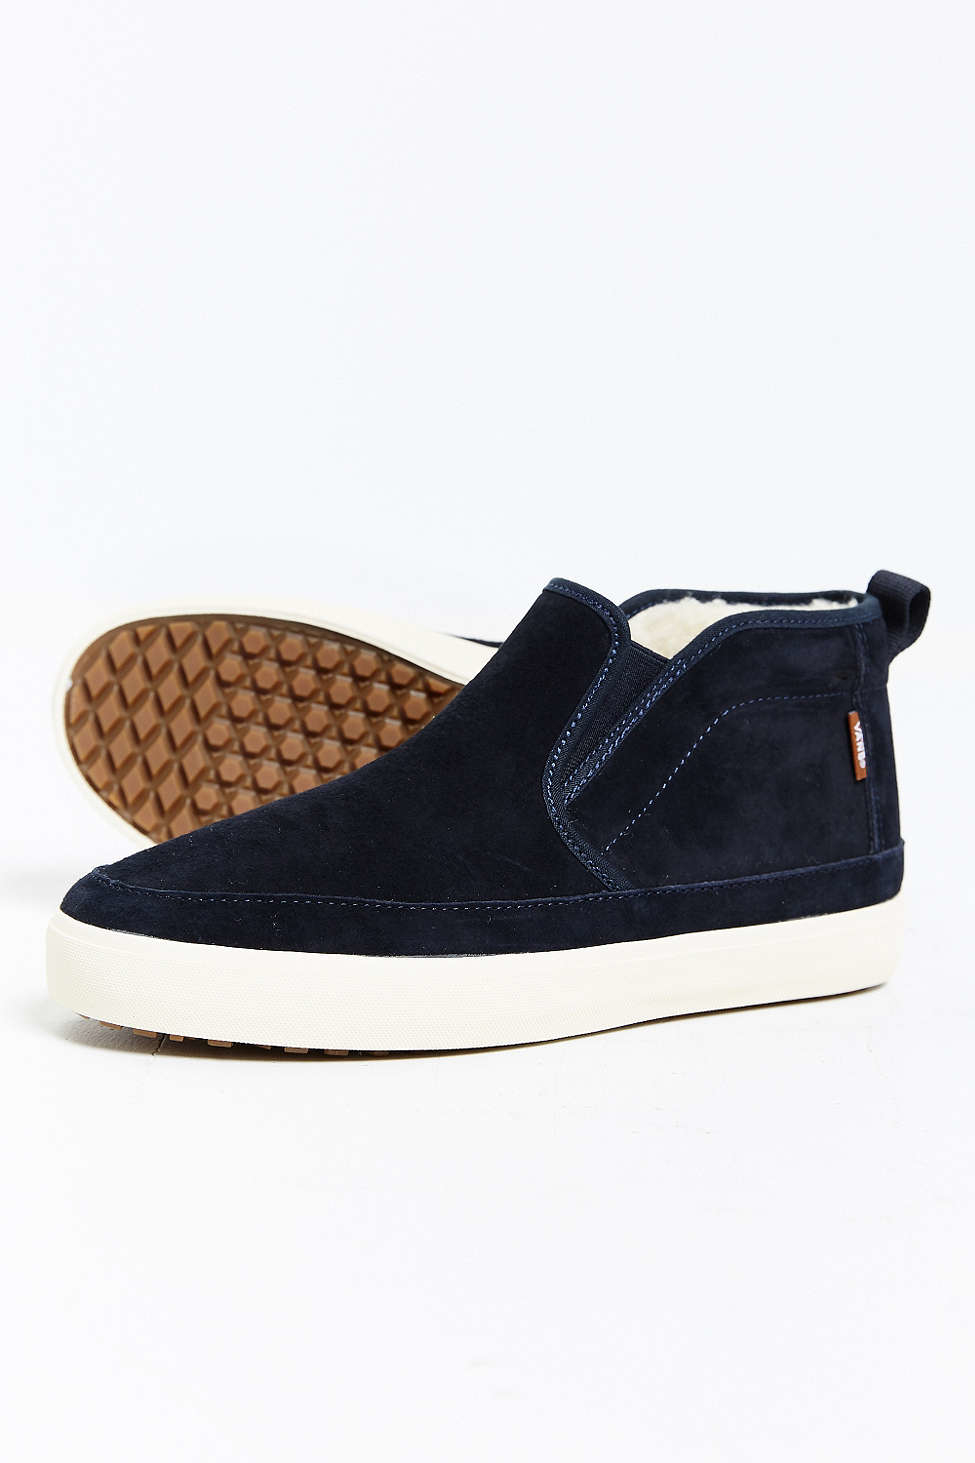 94ef79d470e Lyst - Vans Mid Slip Sf Mte Sneaker in Blue for Men